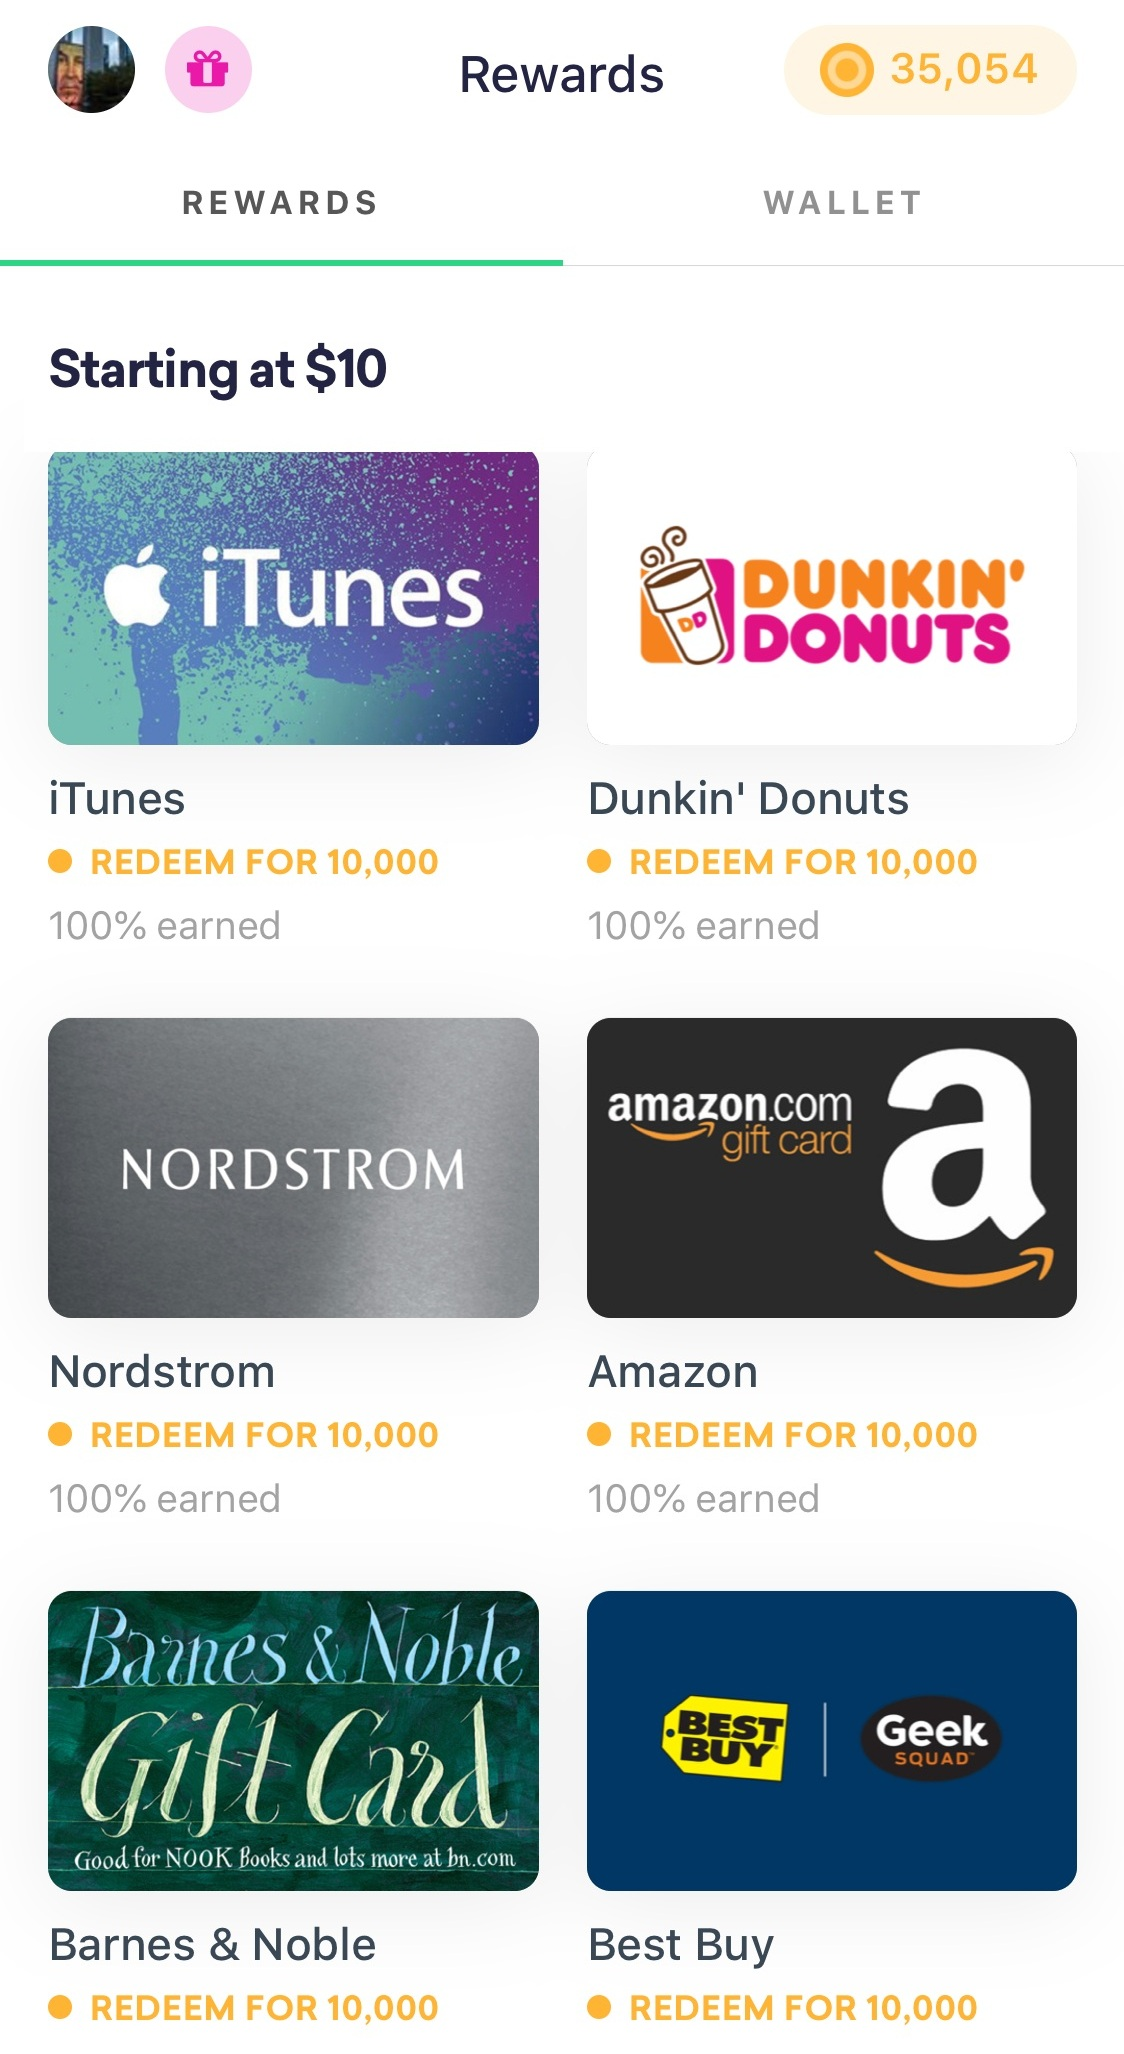 Some gift card options